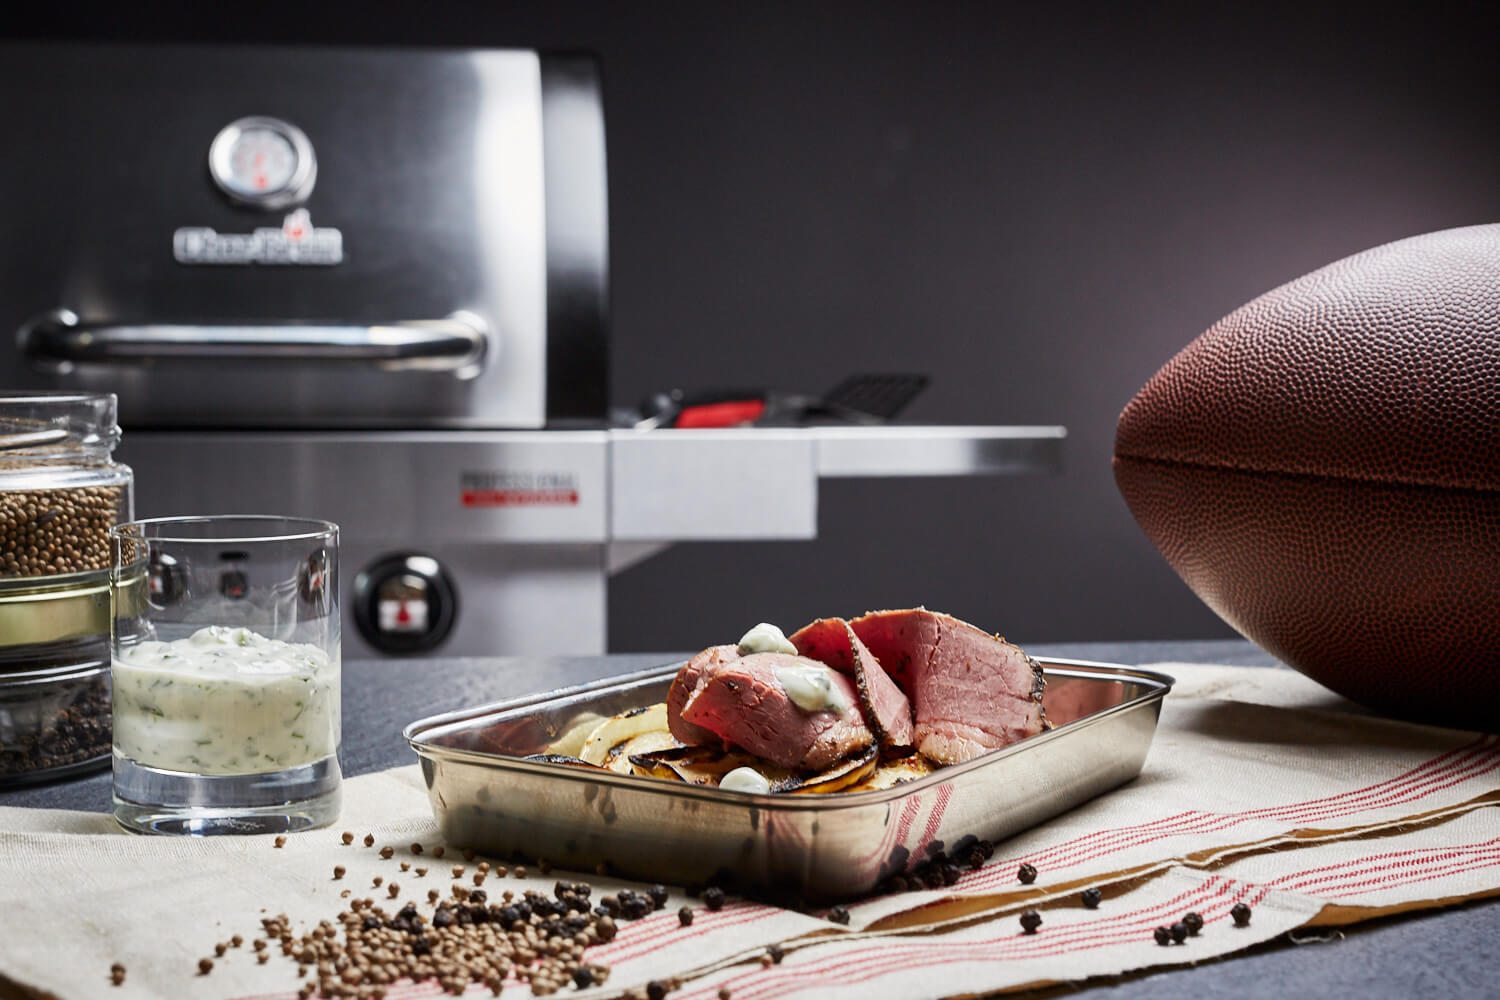 Dallas Cowboys - the Juicy Corned Beef